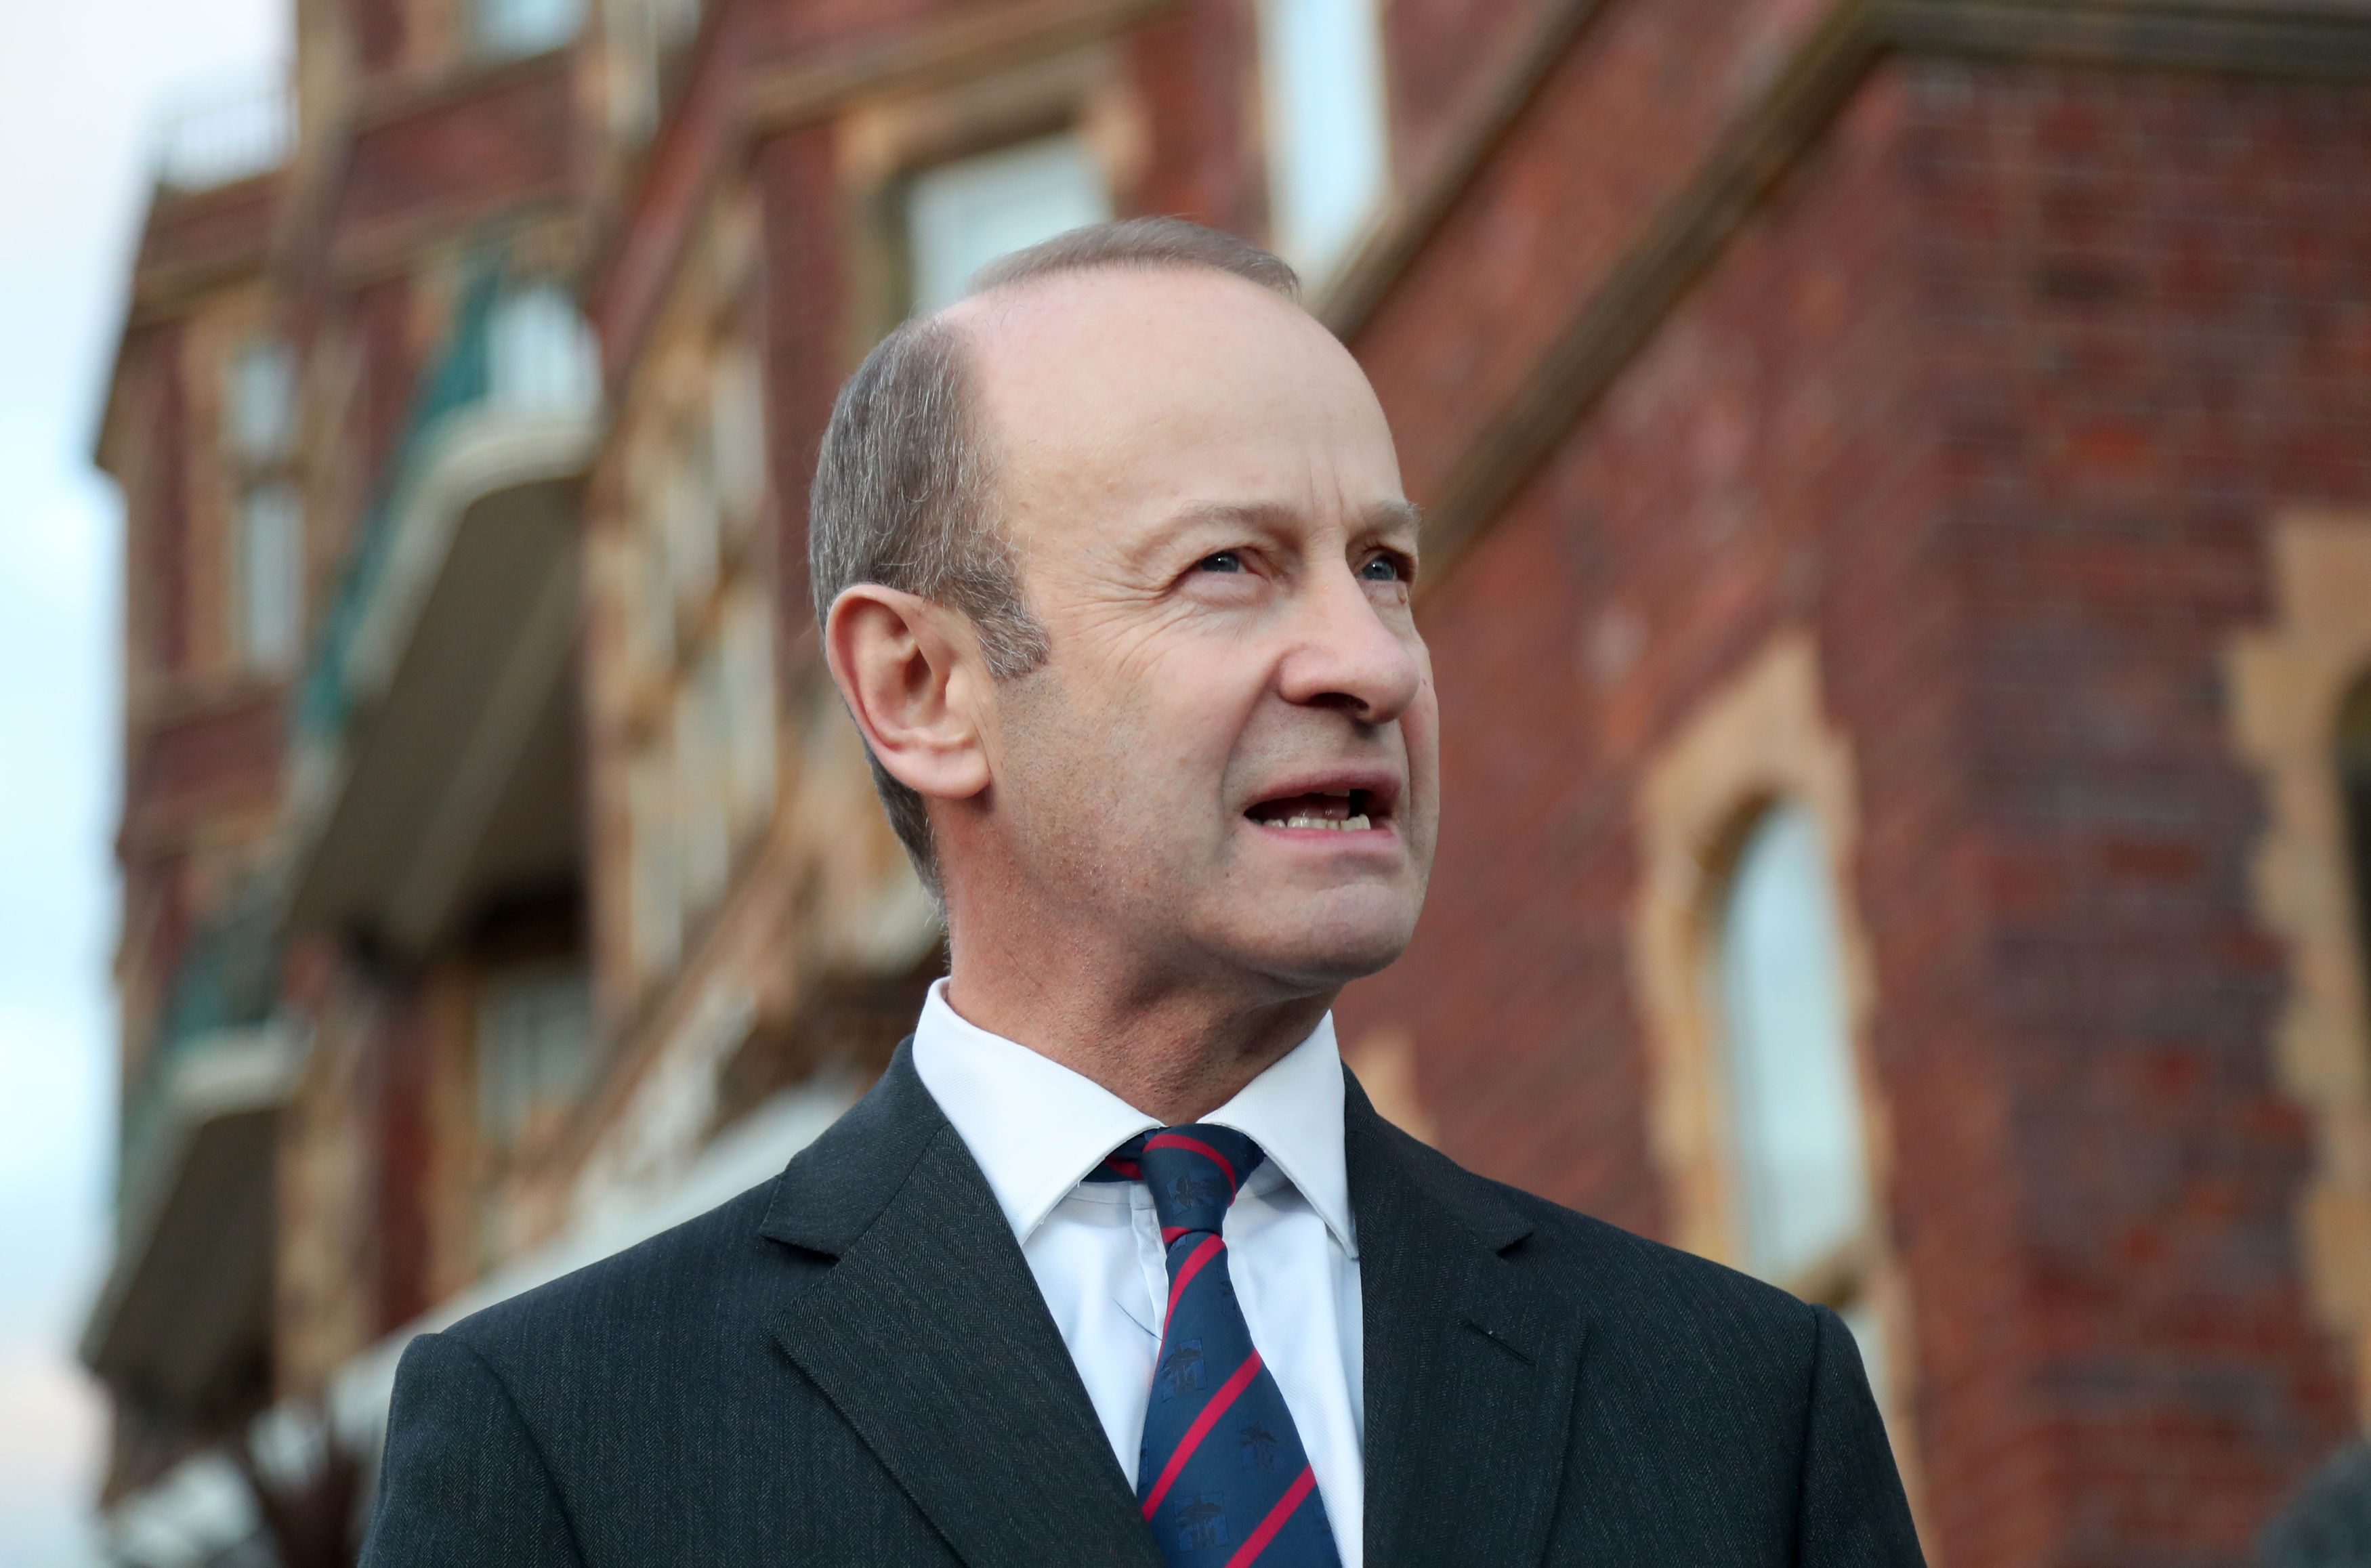 UKIP Leader Henry Bolton Has Just Been Ousted By Party Members